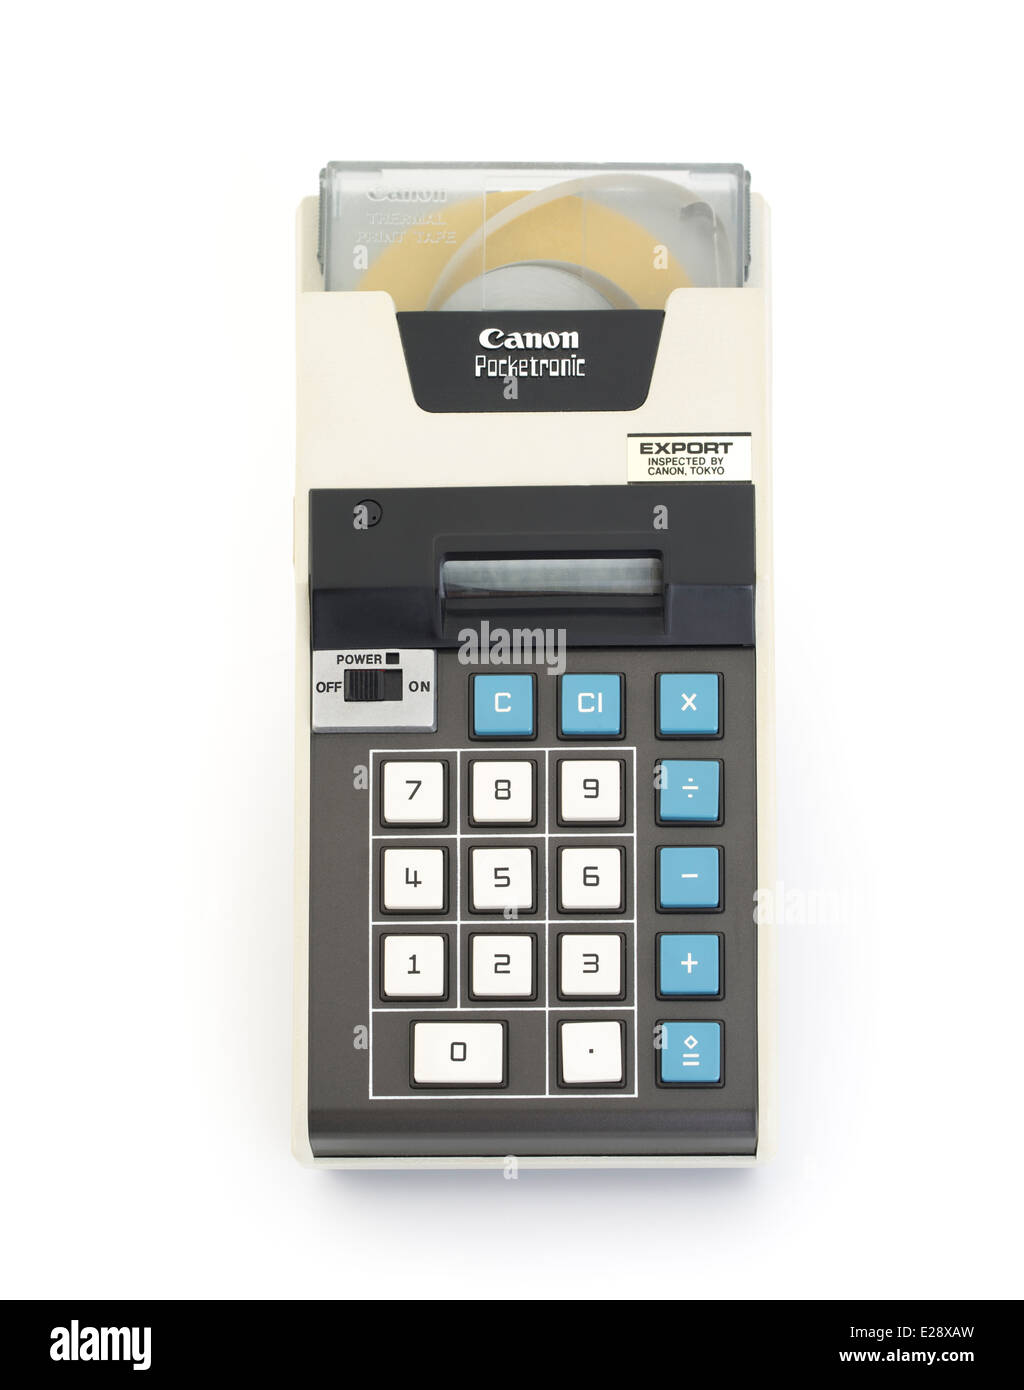 Canon Pocketronic One Of The First Pocket Calculators With Print Out